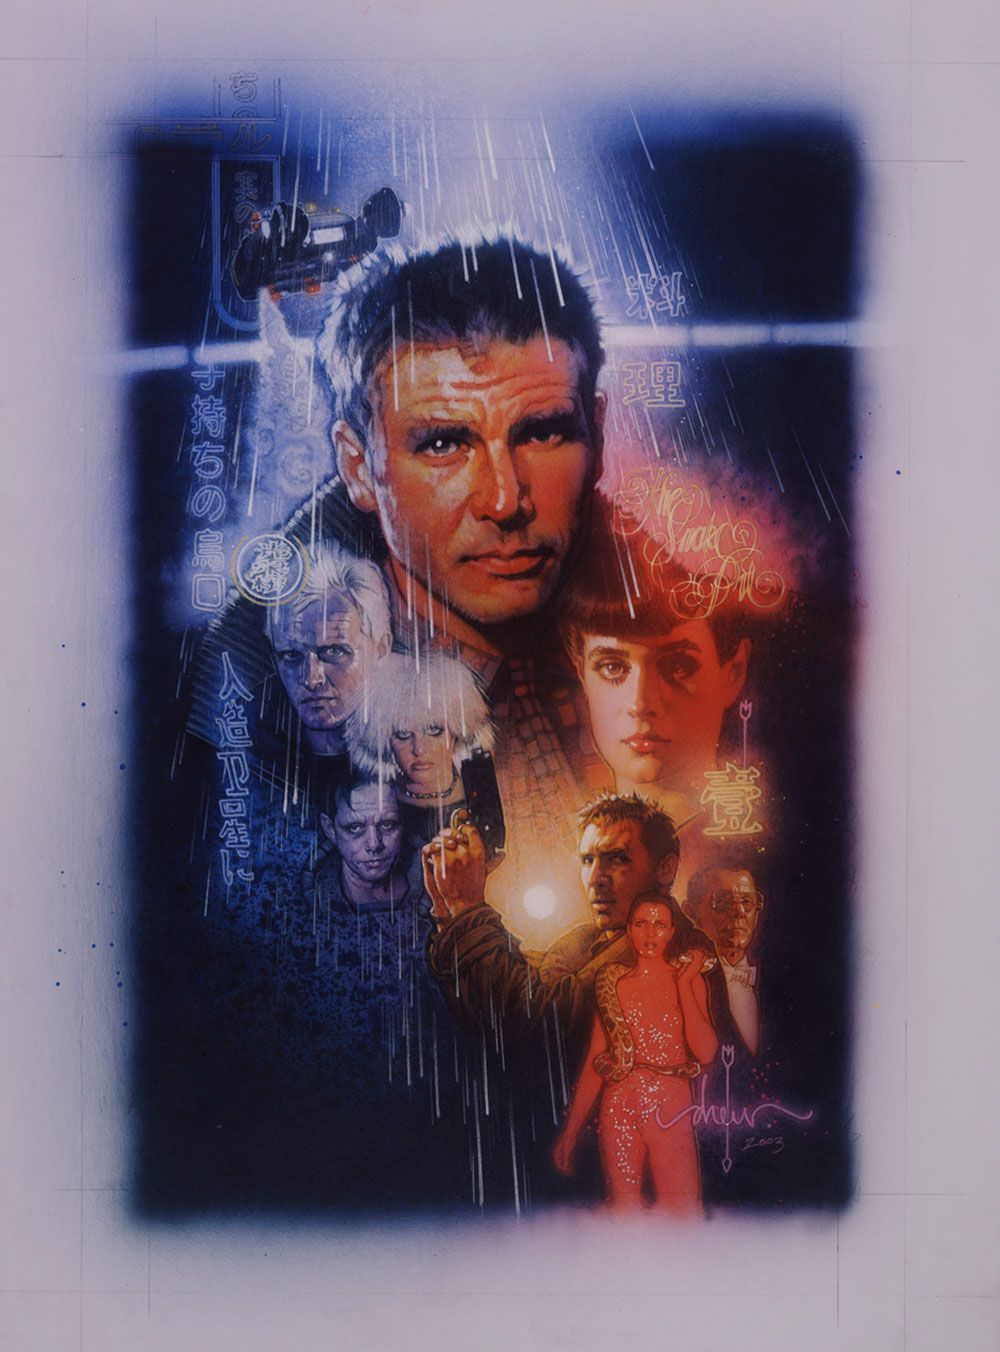 """Blade Runner Medium: Acrylic paints and colored pencils on gessoed board Size: 30x40 inches Year 2003 I began working on this piece of art way back in 1982 when I was commissioned by the Studio to explore concepts for the poster. I did one color comprehensive originally and from that made a few alterations as requested by the Studio. In the end, they did not use my design so I never painted the finished illustration. In 2001, when Ridley Scott was thinking of releasing a new director's version of the film, I was asked if my original sketch from '82 could be used on the cover. It turned out that this was Ridley's favorite artwork for his film. I went through the usual artist angst, rather than use a comprehensive for the cover, better to use finished art and if I'm going to paint the finish should it be the 20-year-old design or should it be updated. I decided on the latter. The DVD was produced at long last and this is now the cover (2007). Signed and dated bottom right corner """"drew 2003"""" © Copyright drew Struzan 2003"""